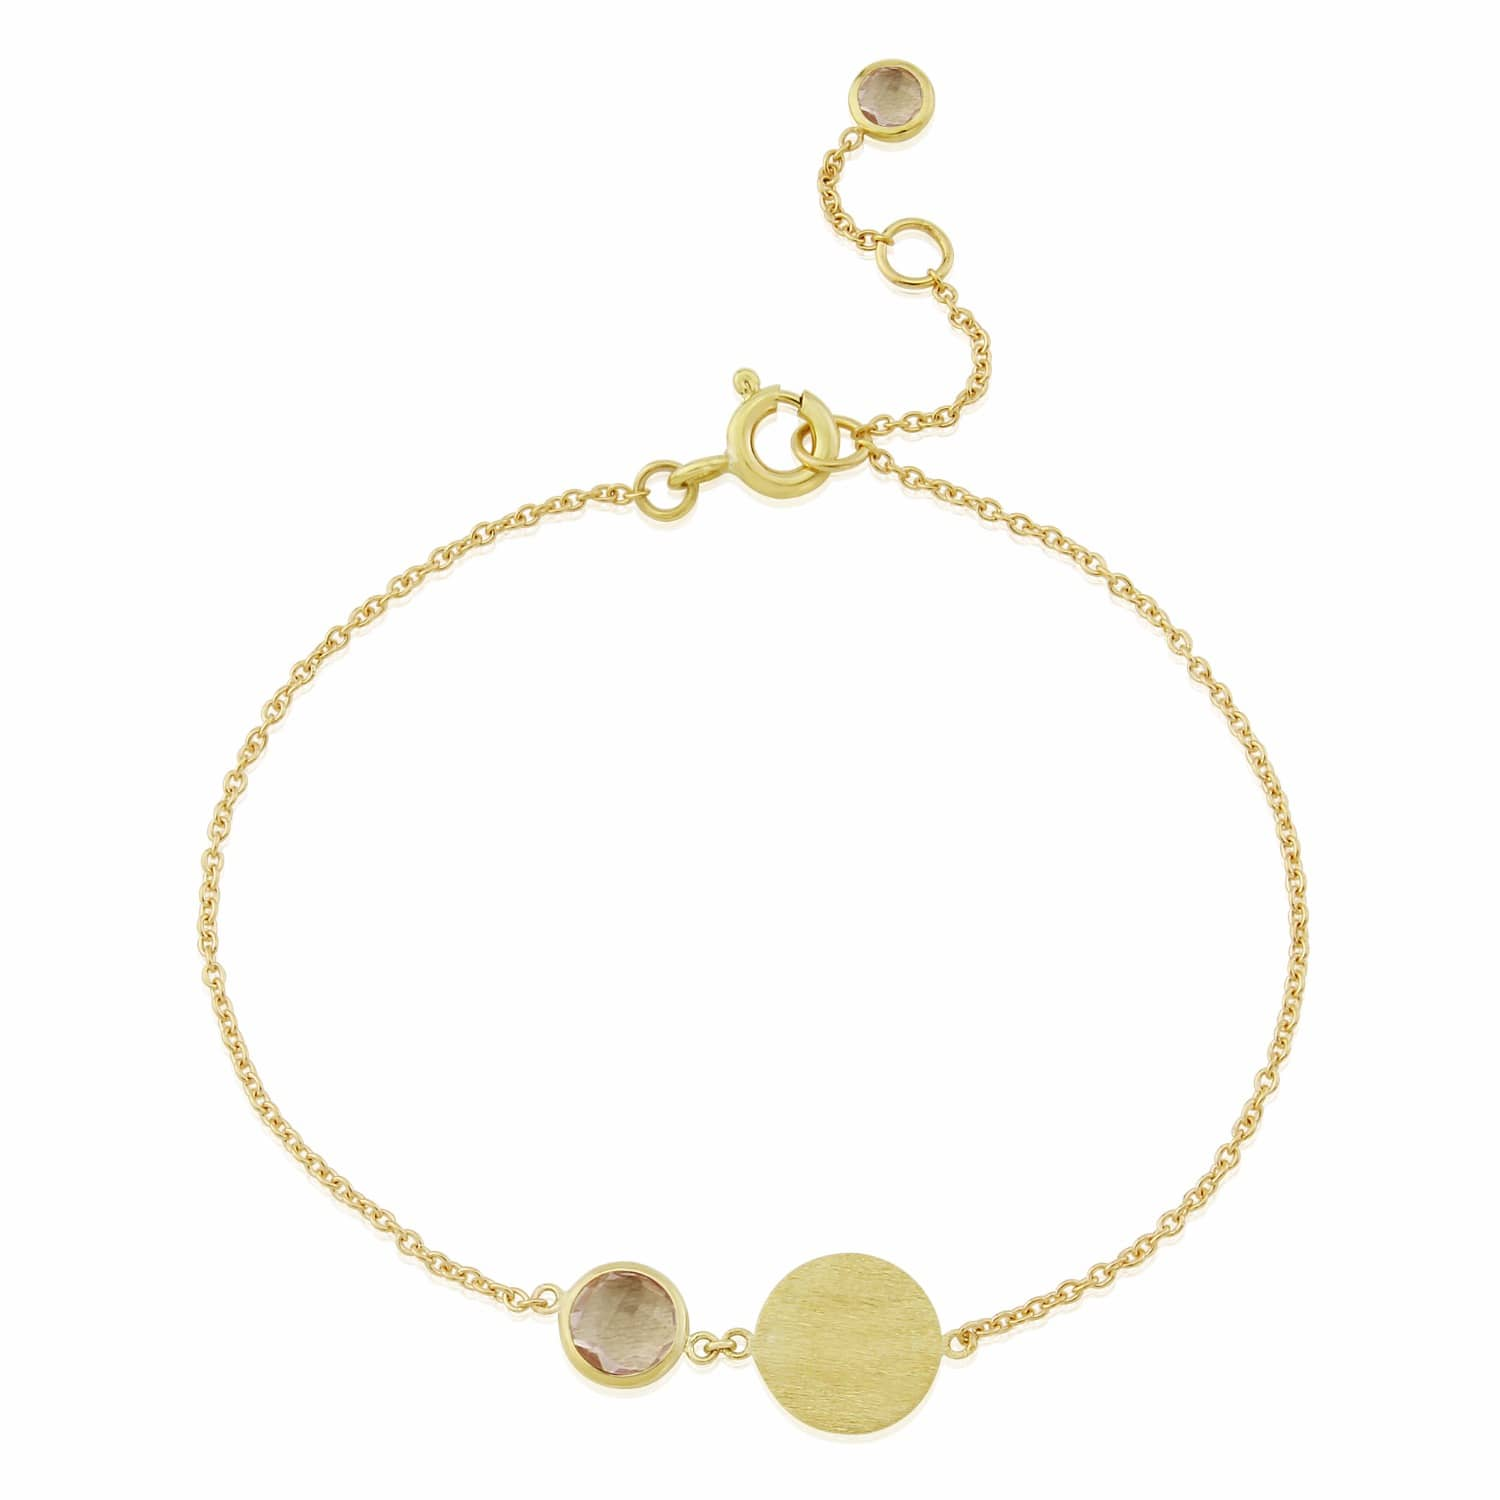 07a029eaaac72 Bali 9ct Gold October Birthstone Bracelet Rose Quartz by Auree Jewellery